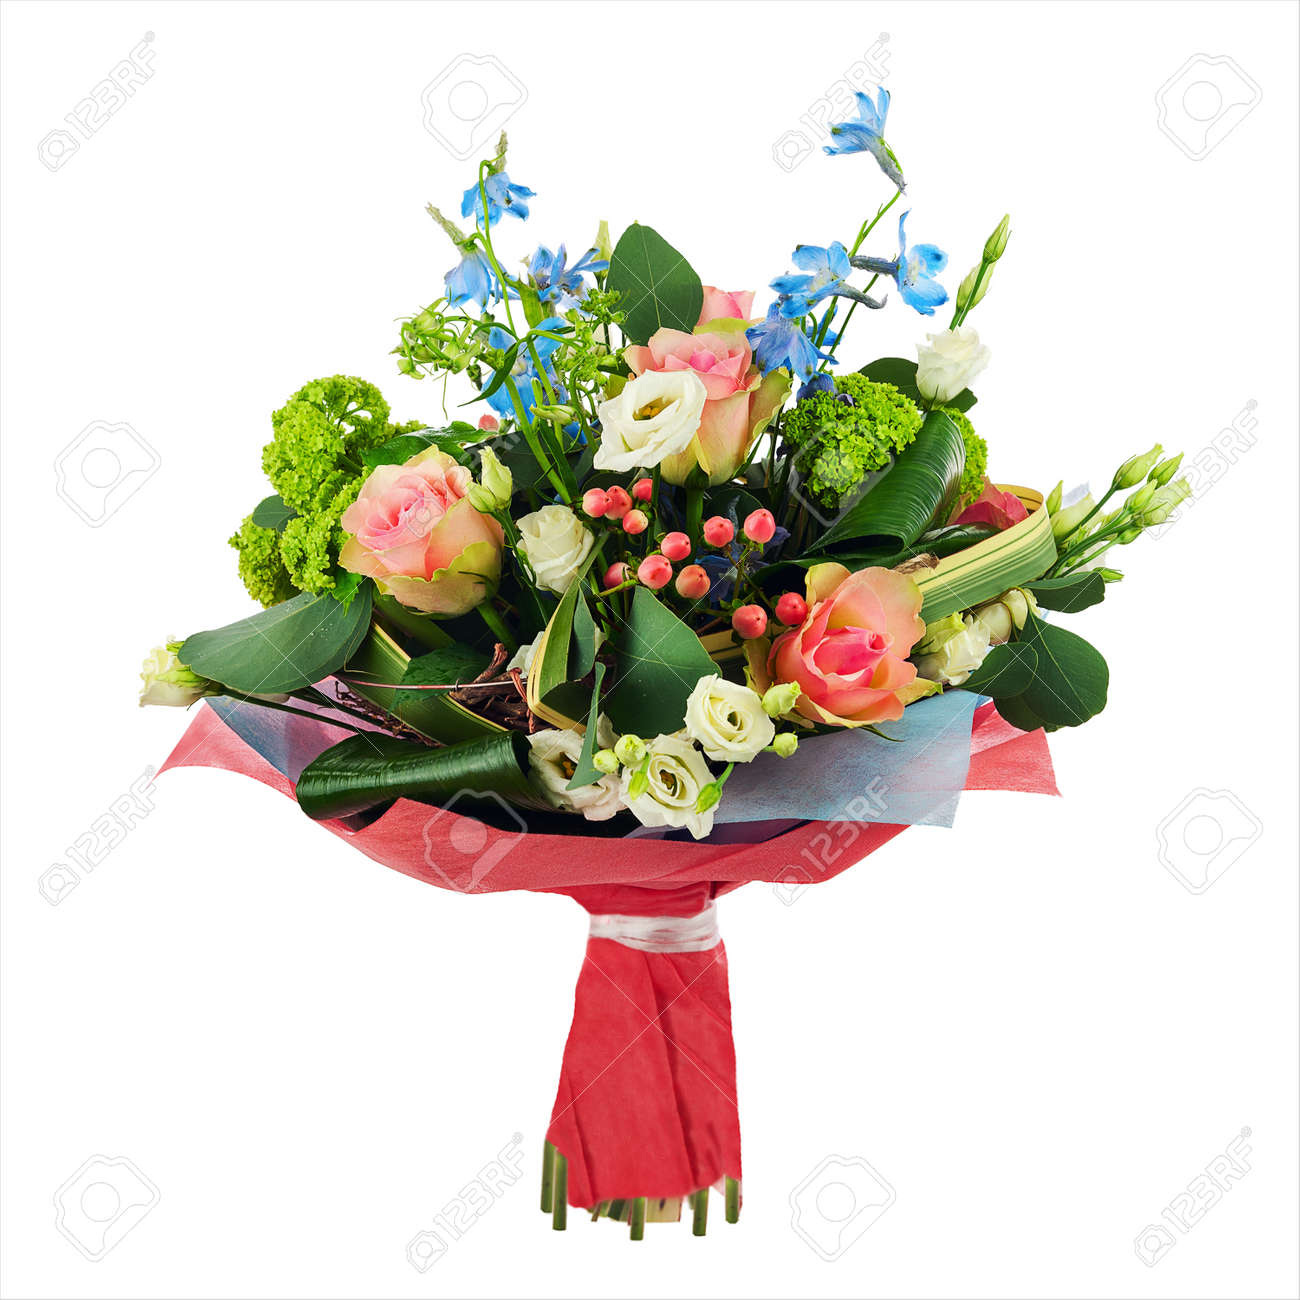 Flower Bouquet From Multi Colored Roses, Iris And Other Flowers ...